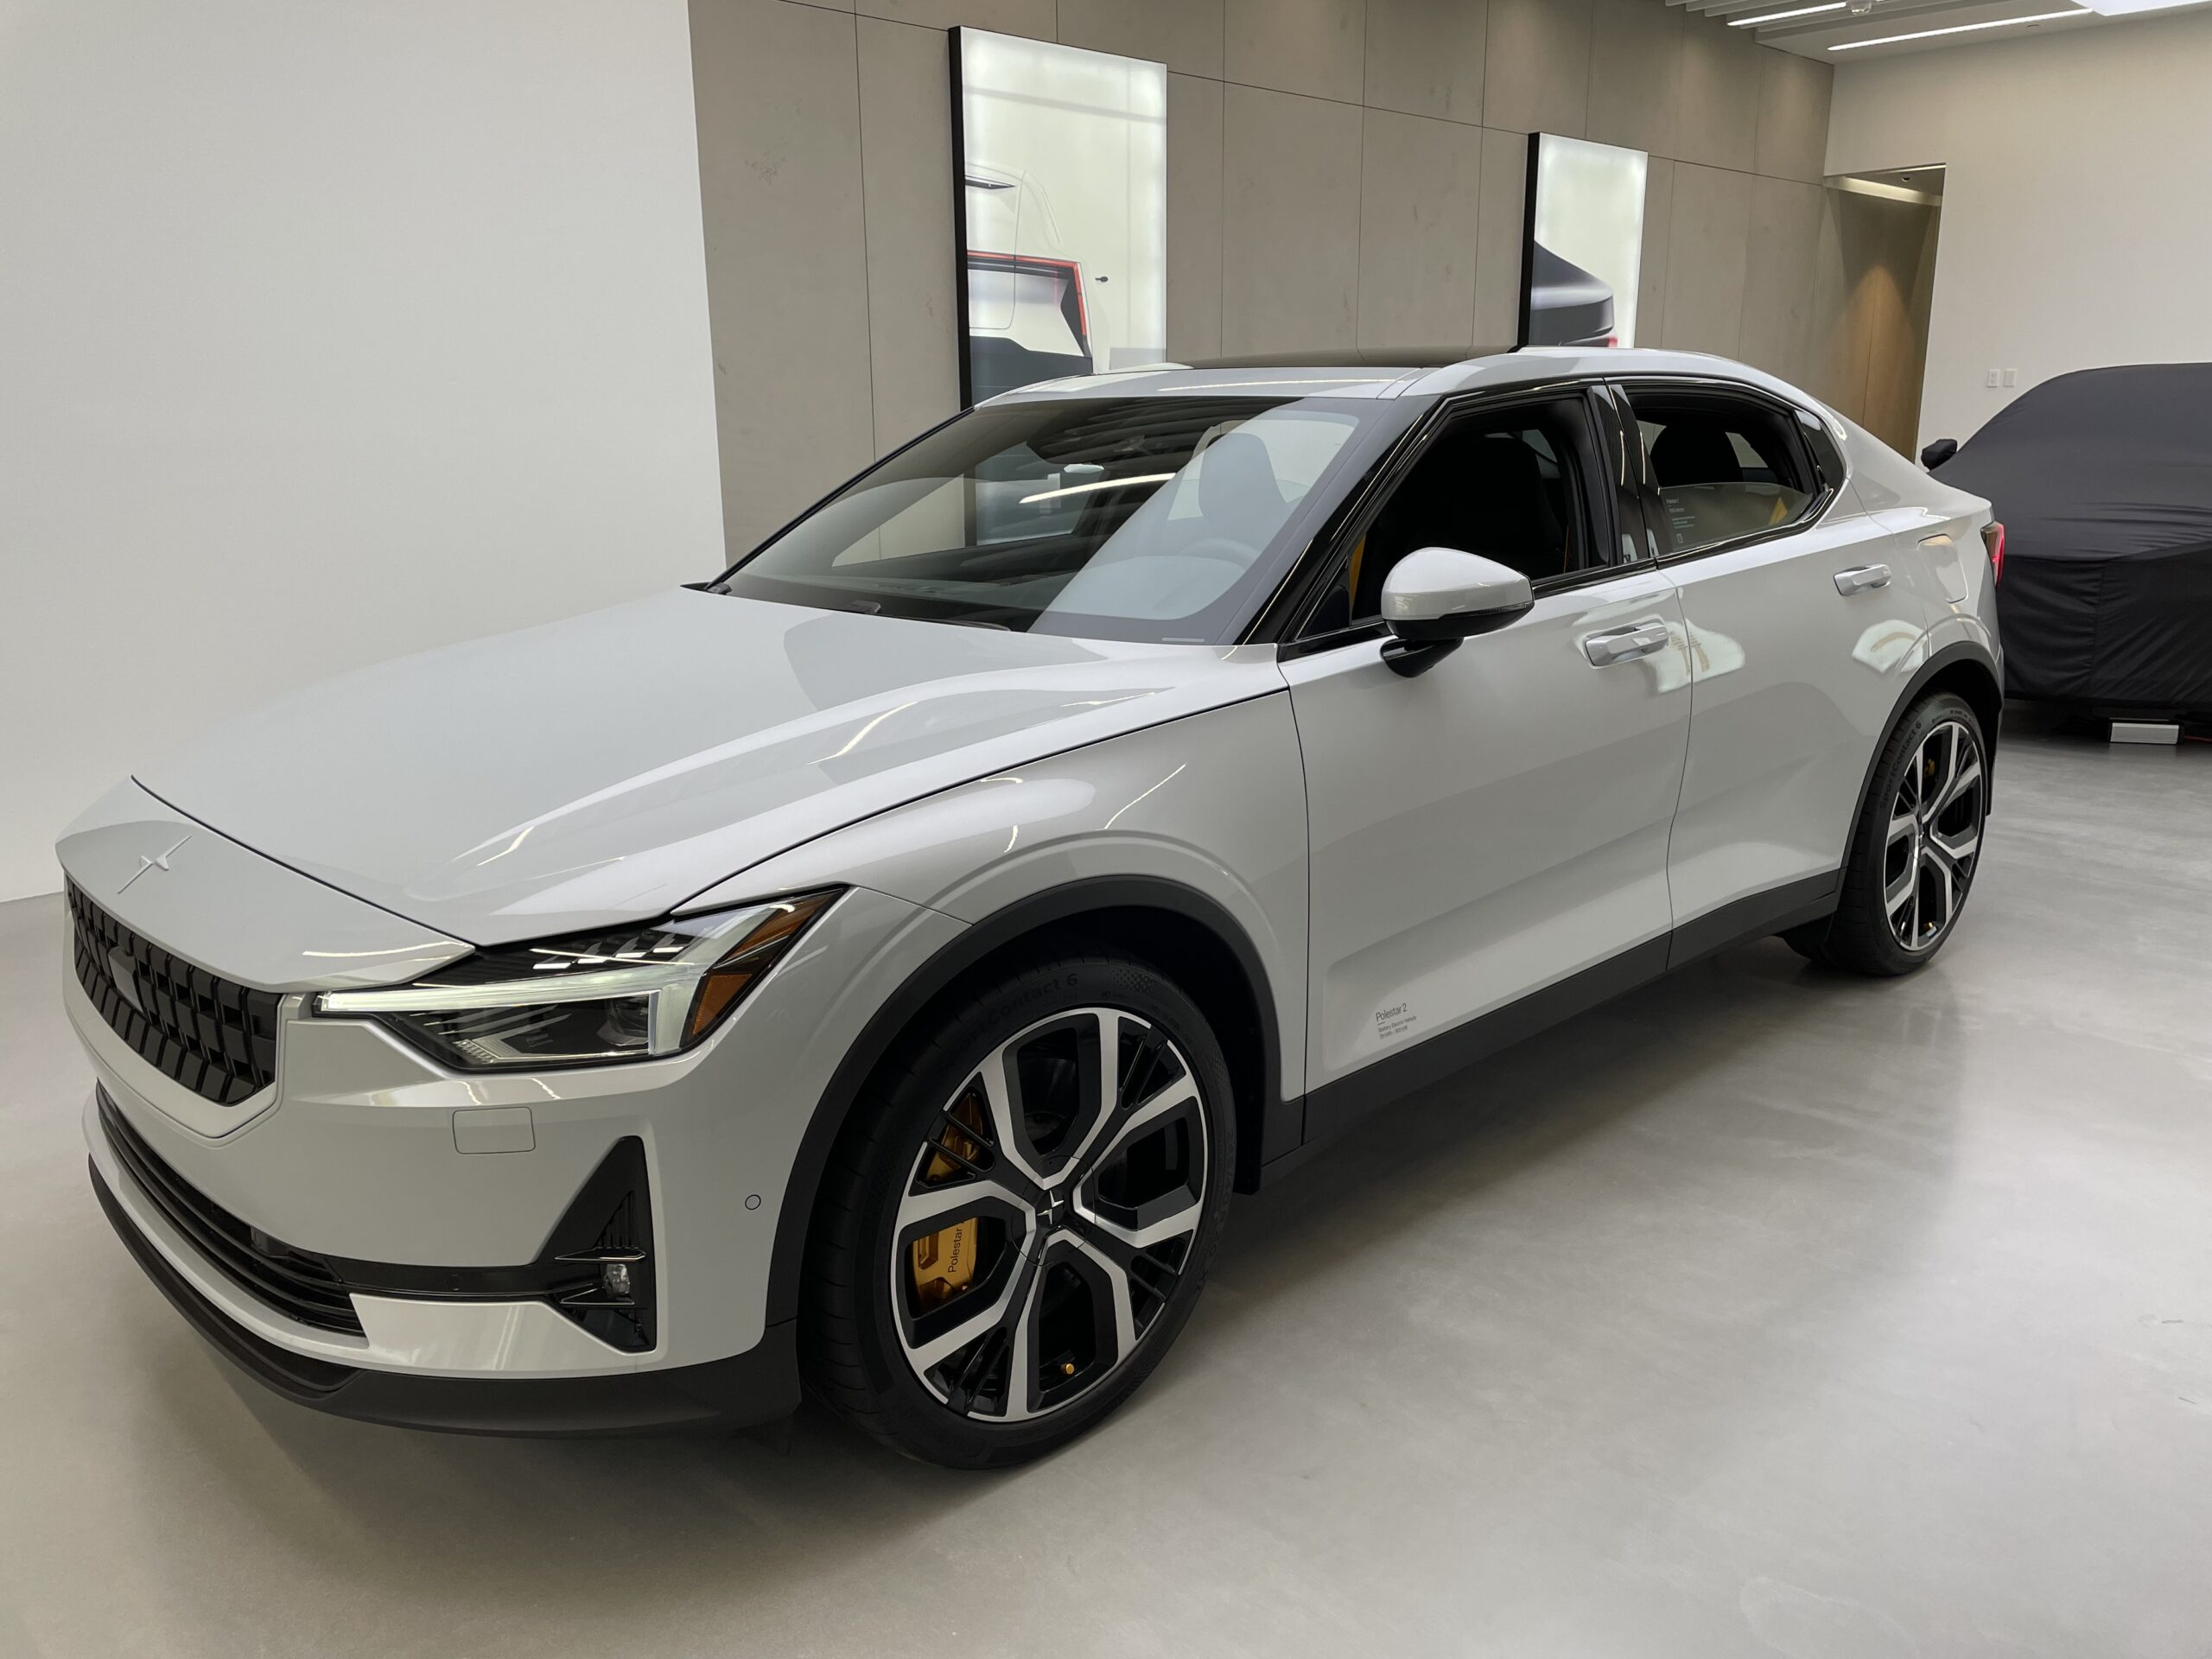 Where can I test drive an electric vehicle?